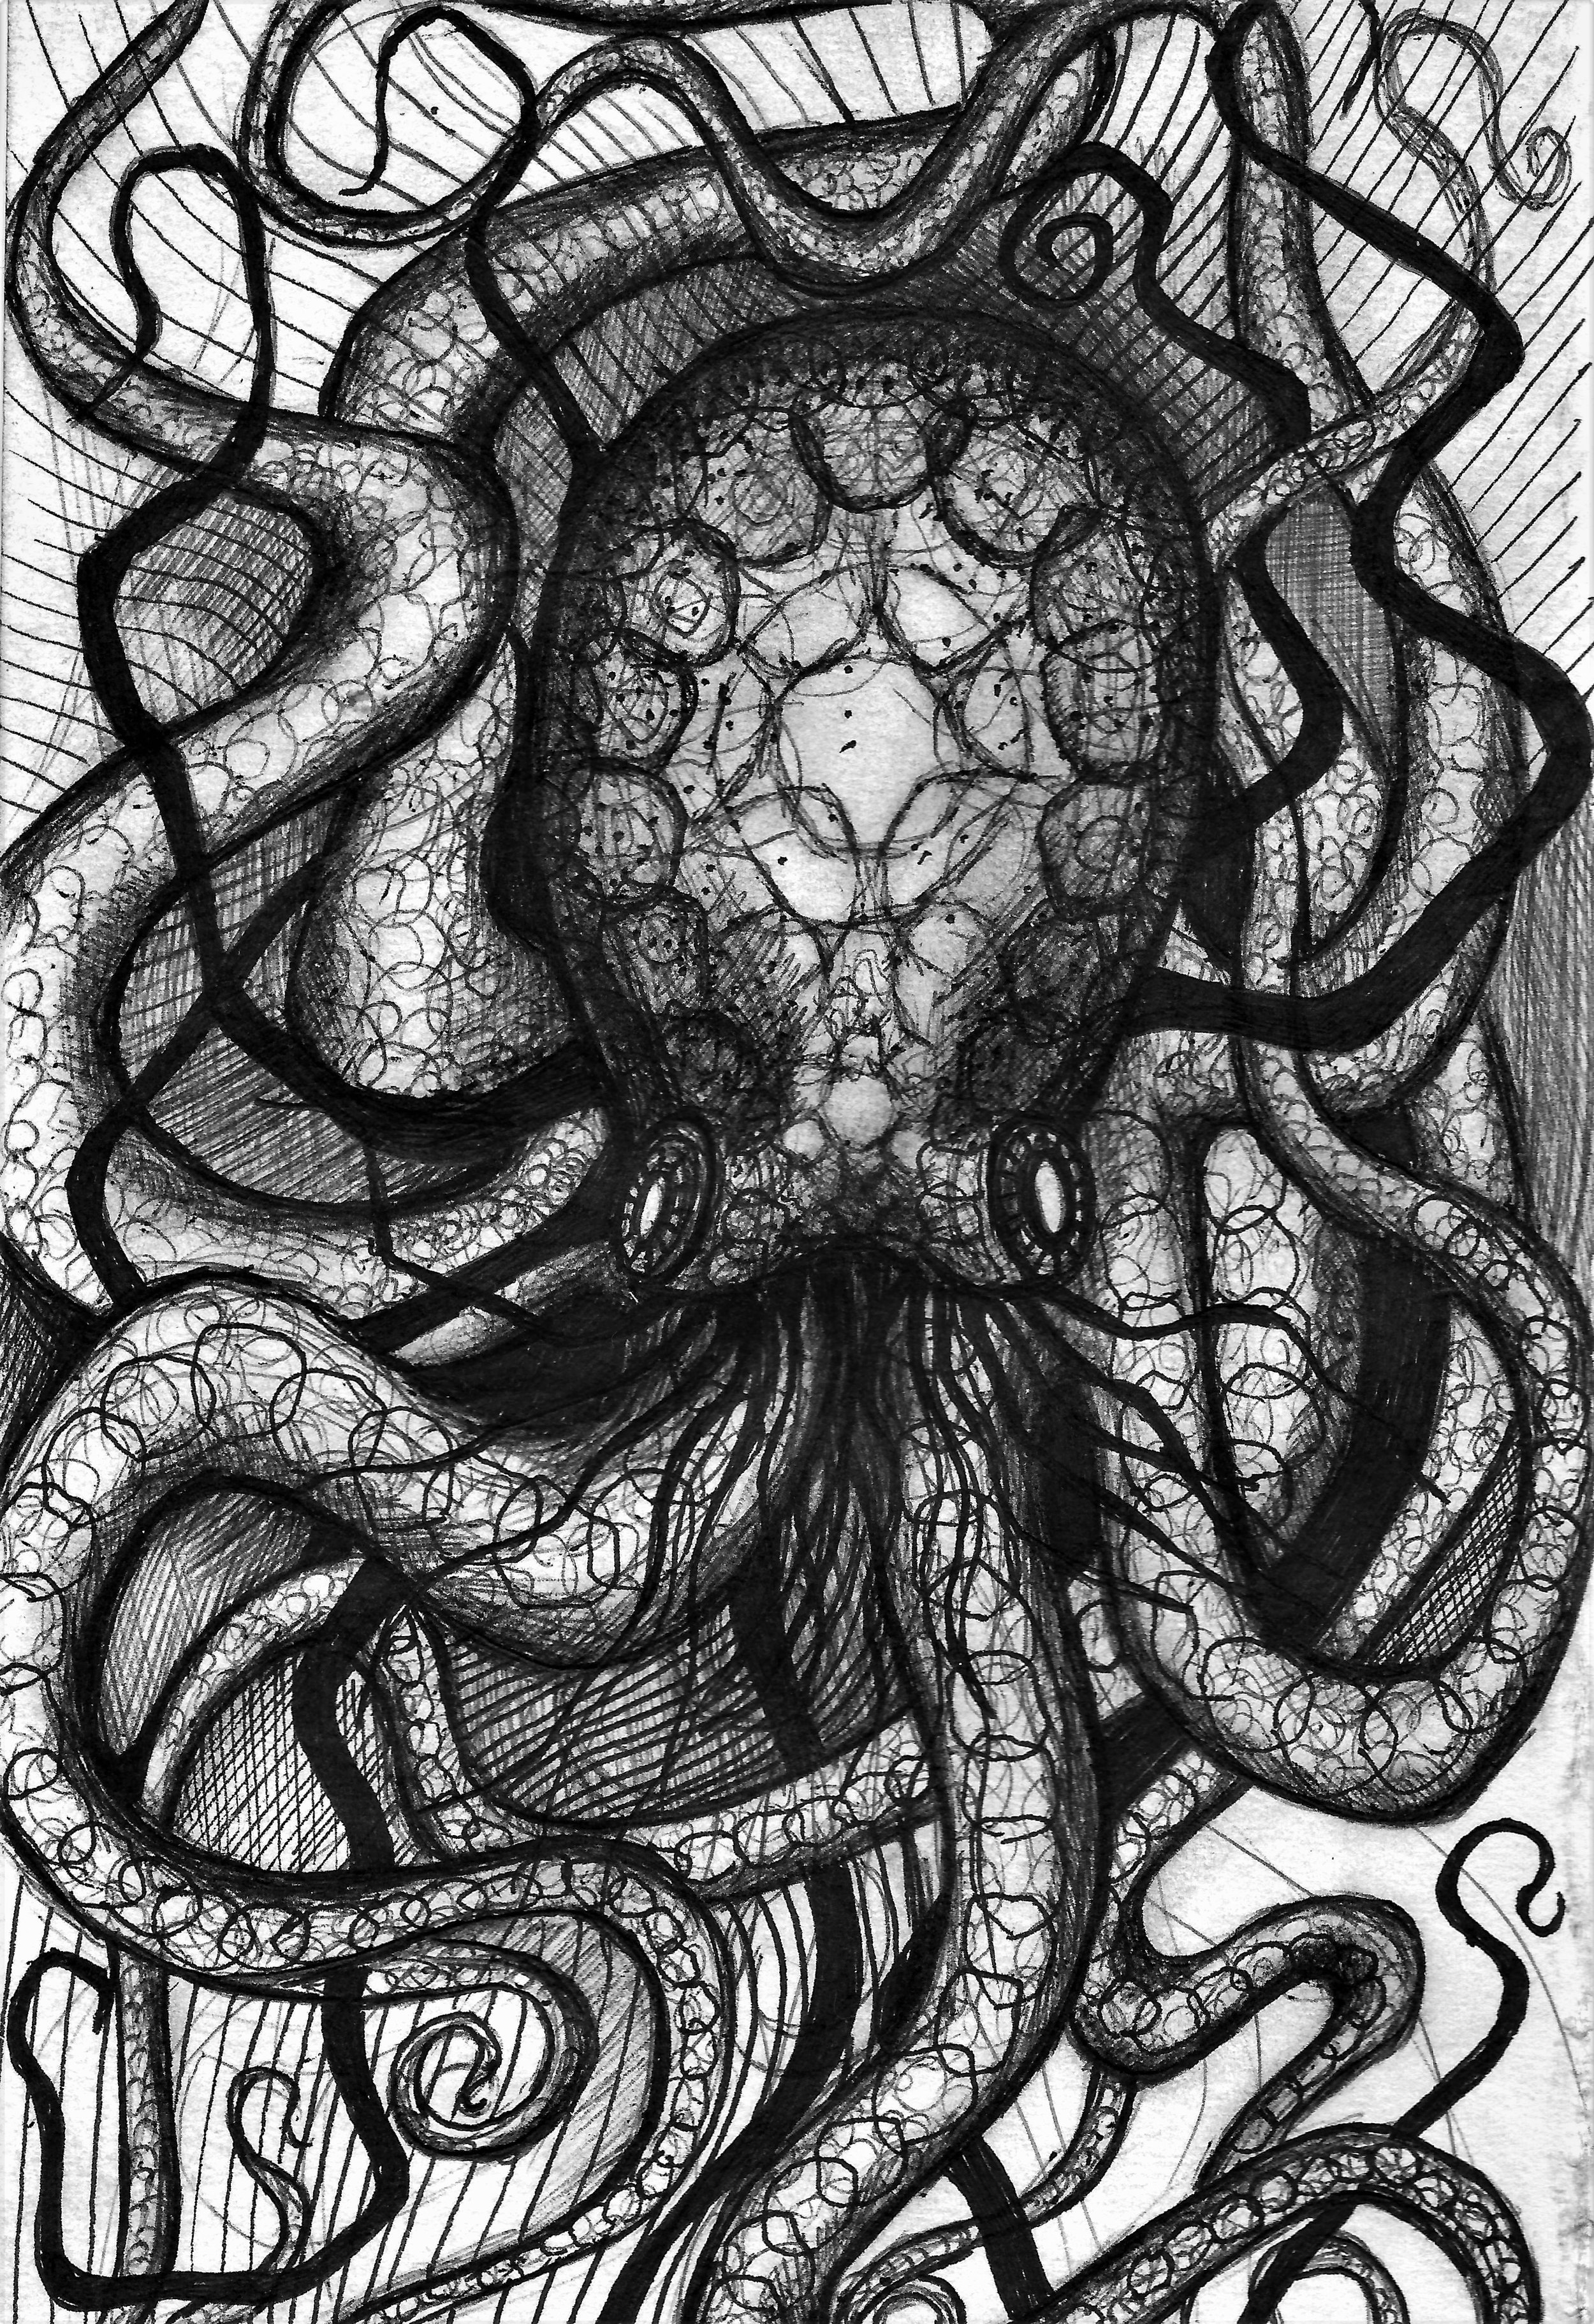 (Octopus) pen on paper